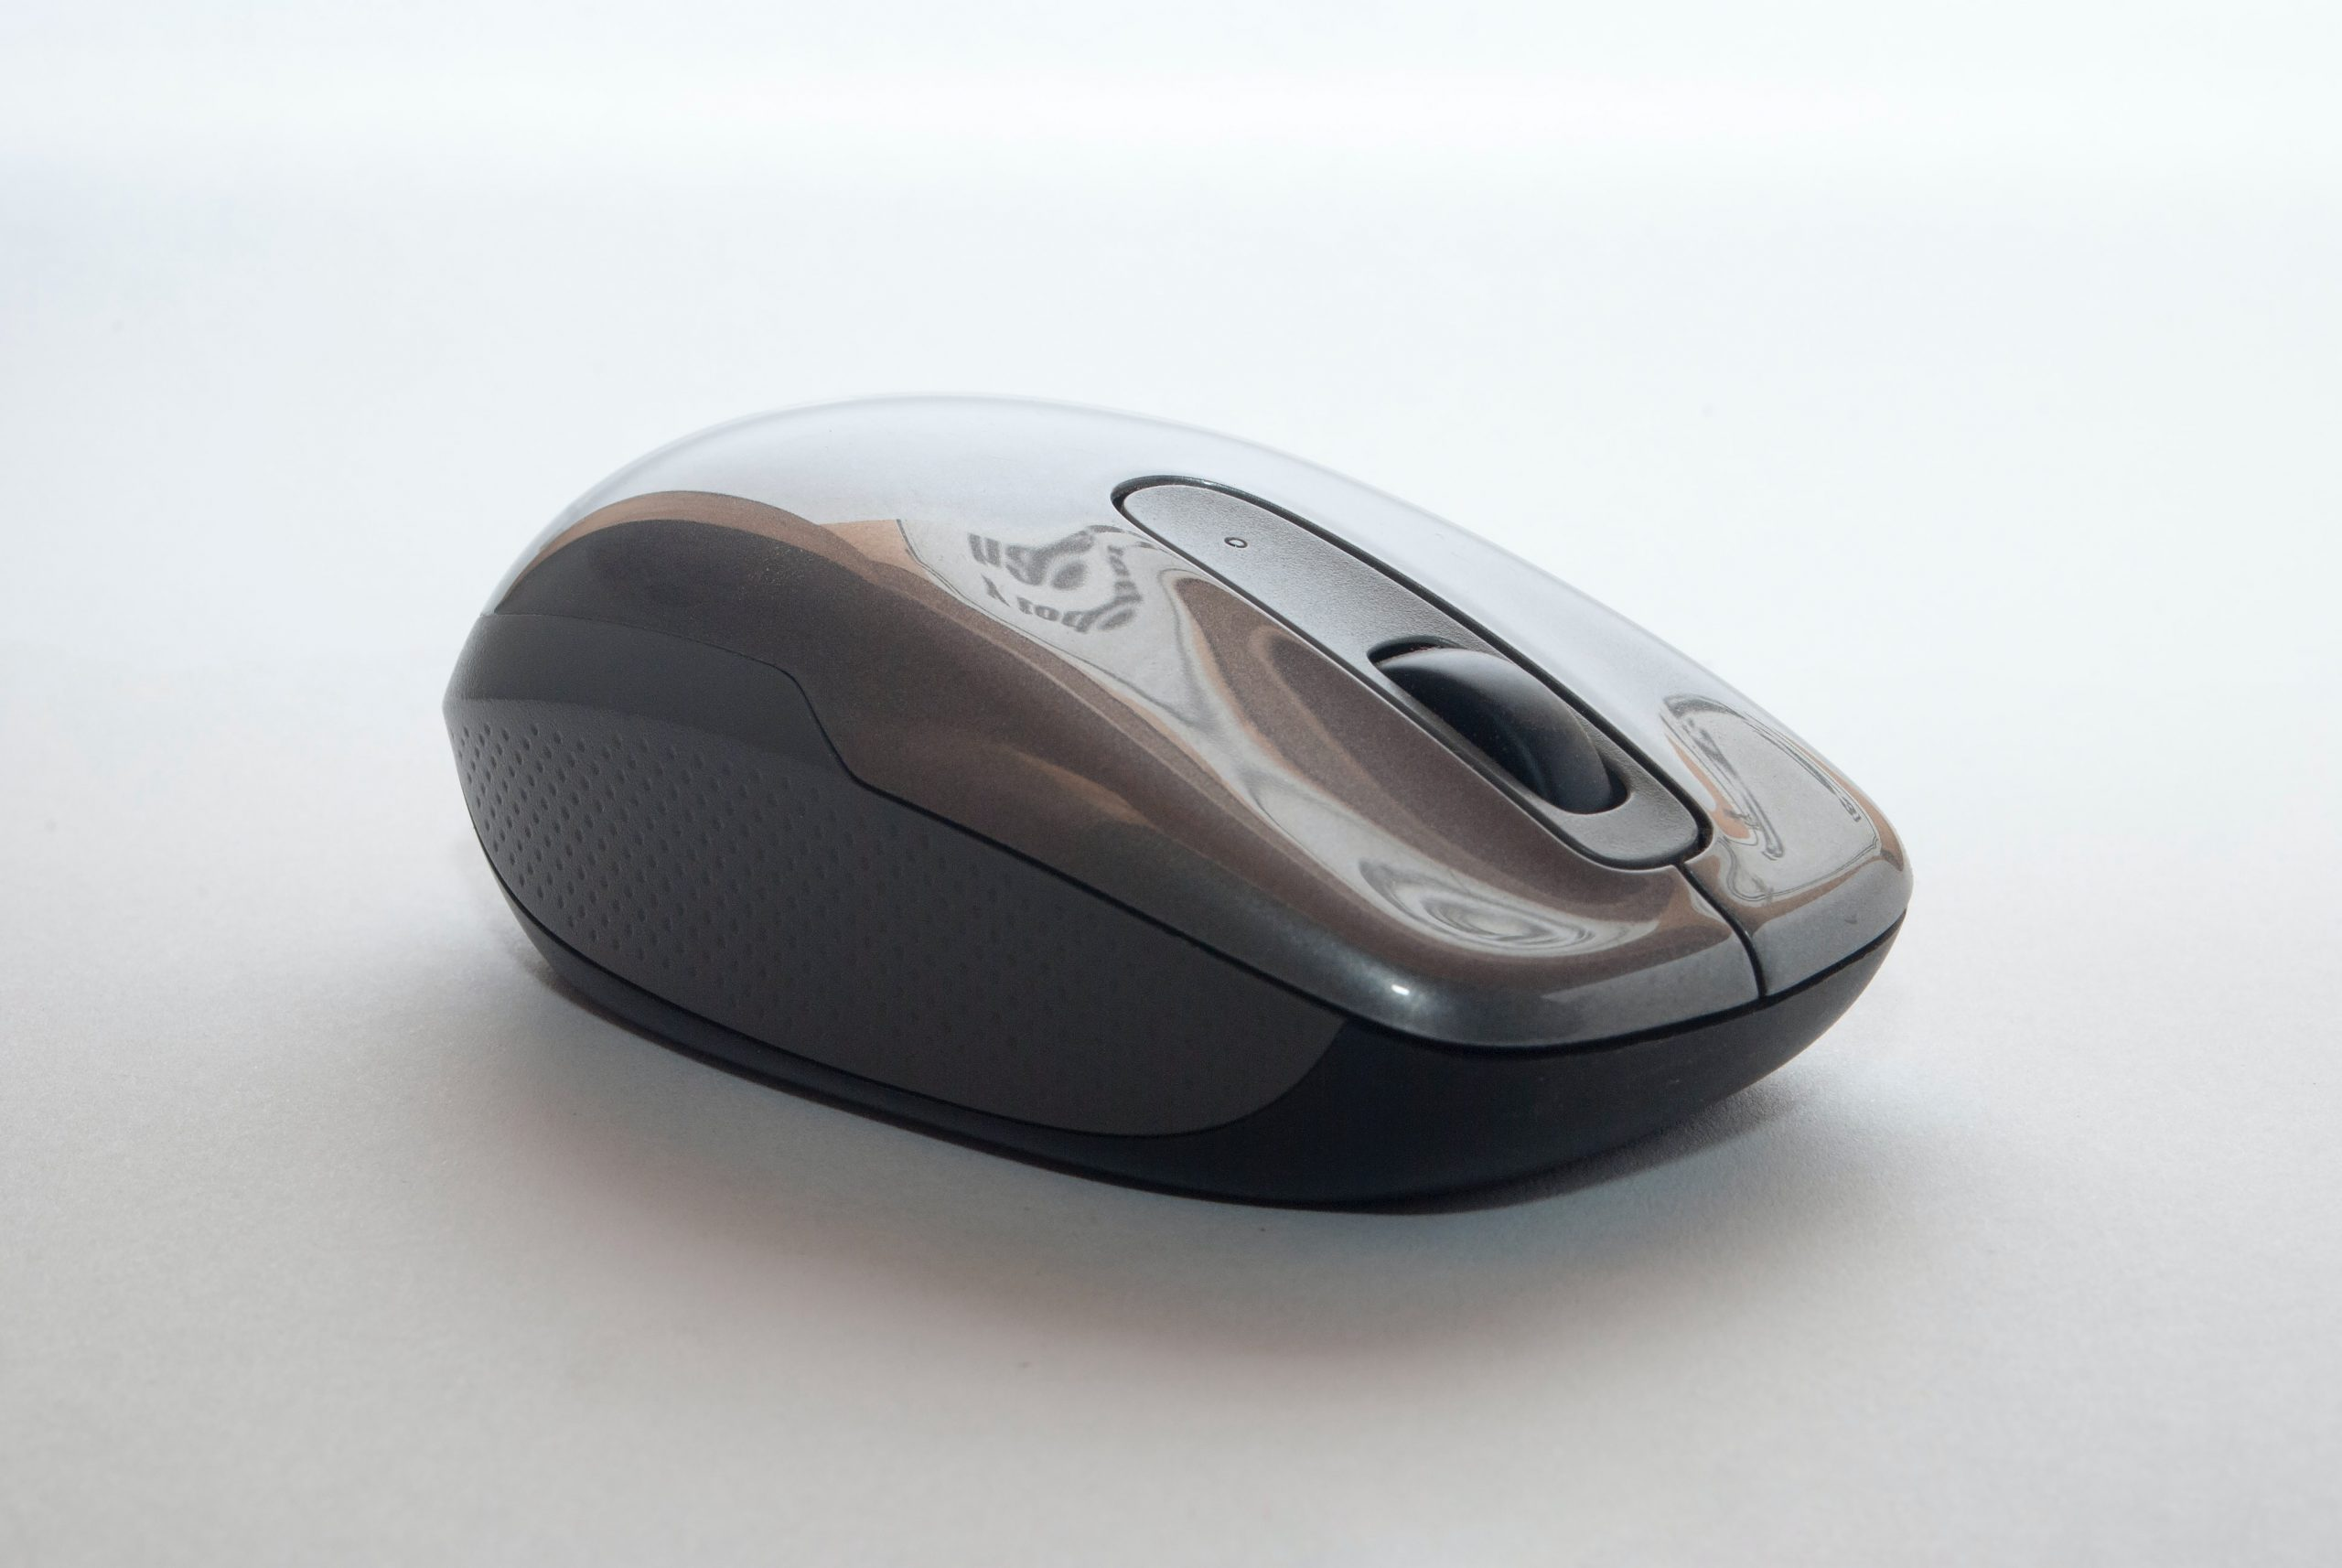 How Long Does a Computer Mouse Last and When to Change It